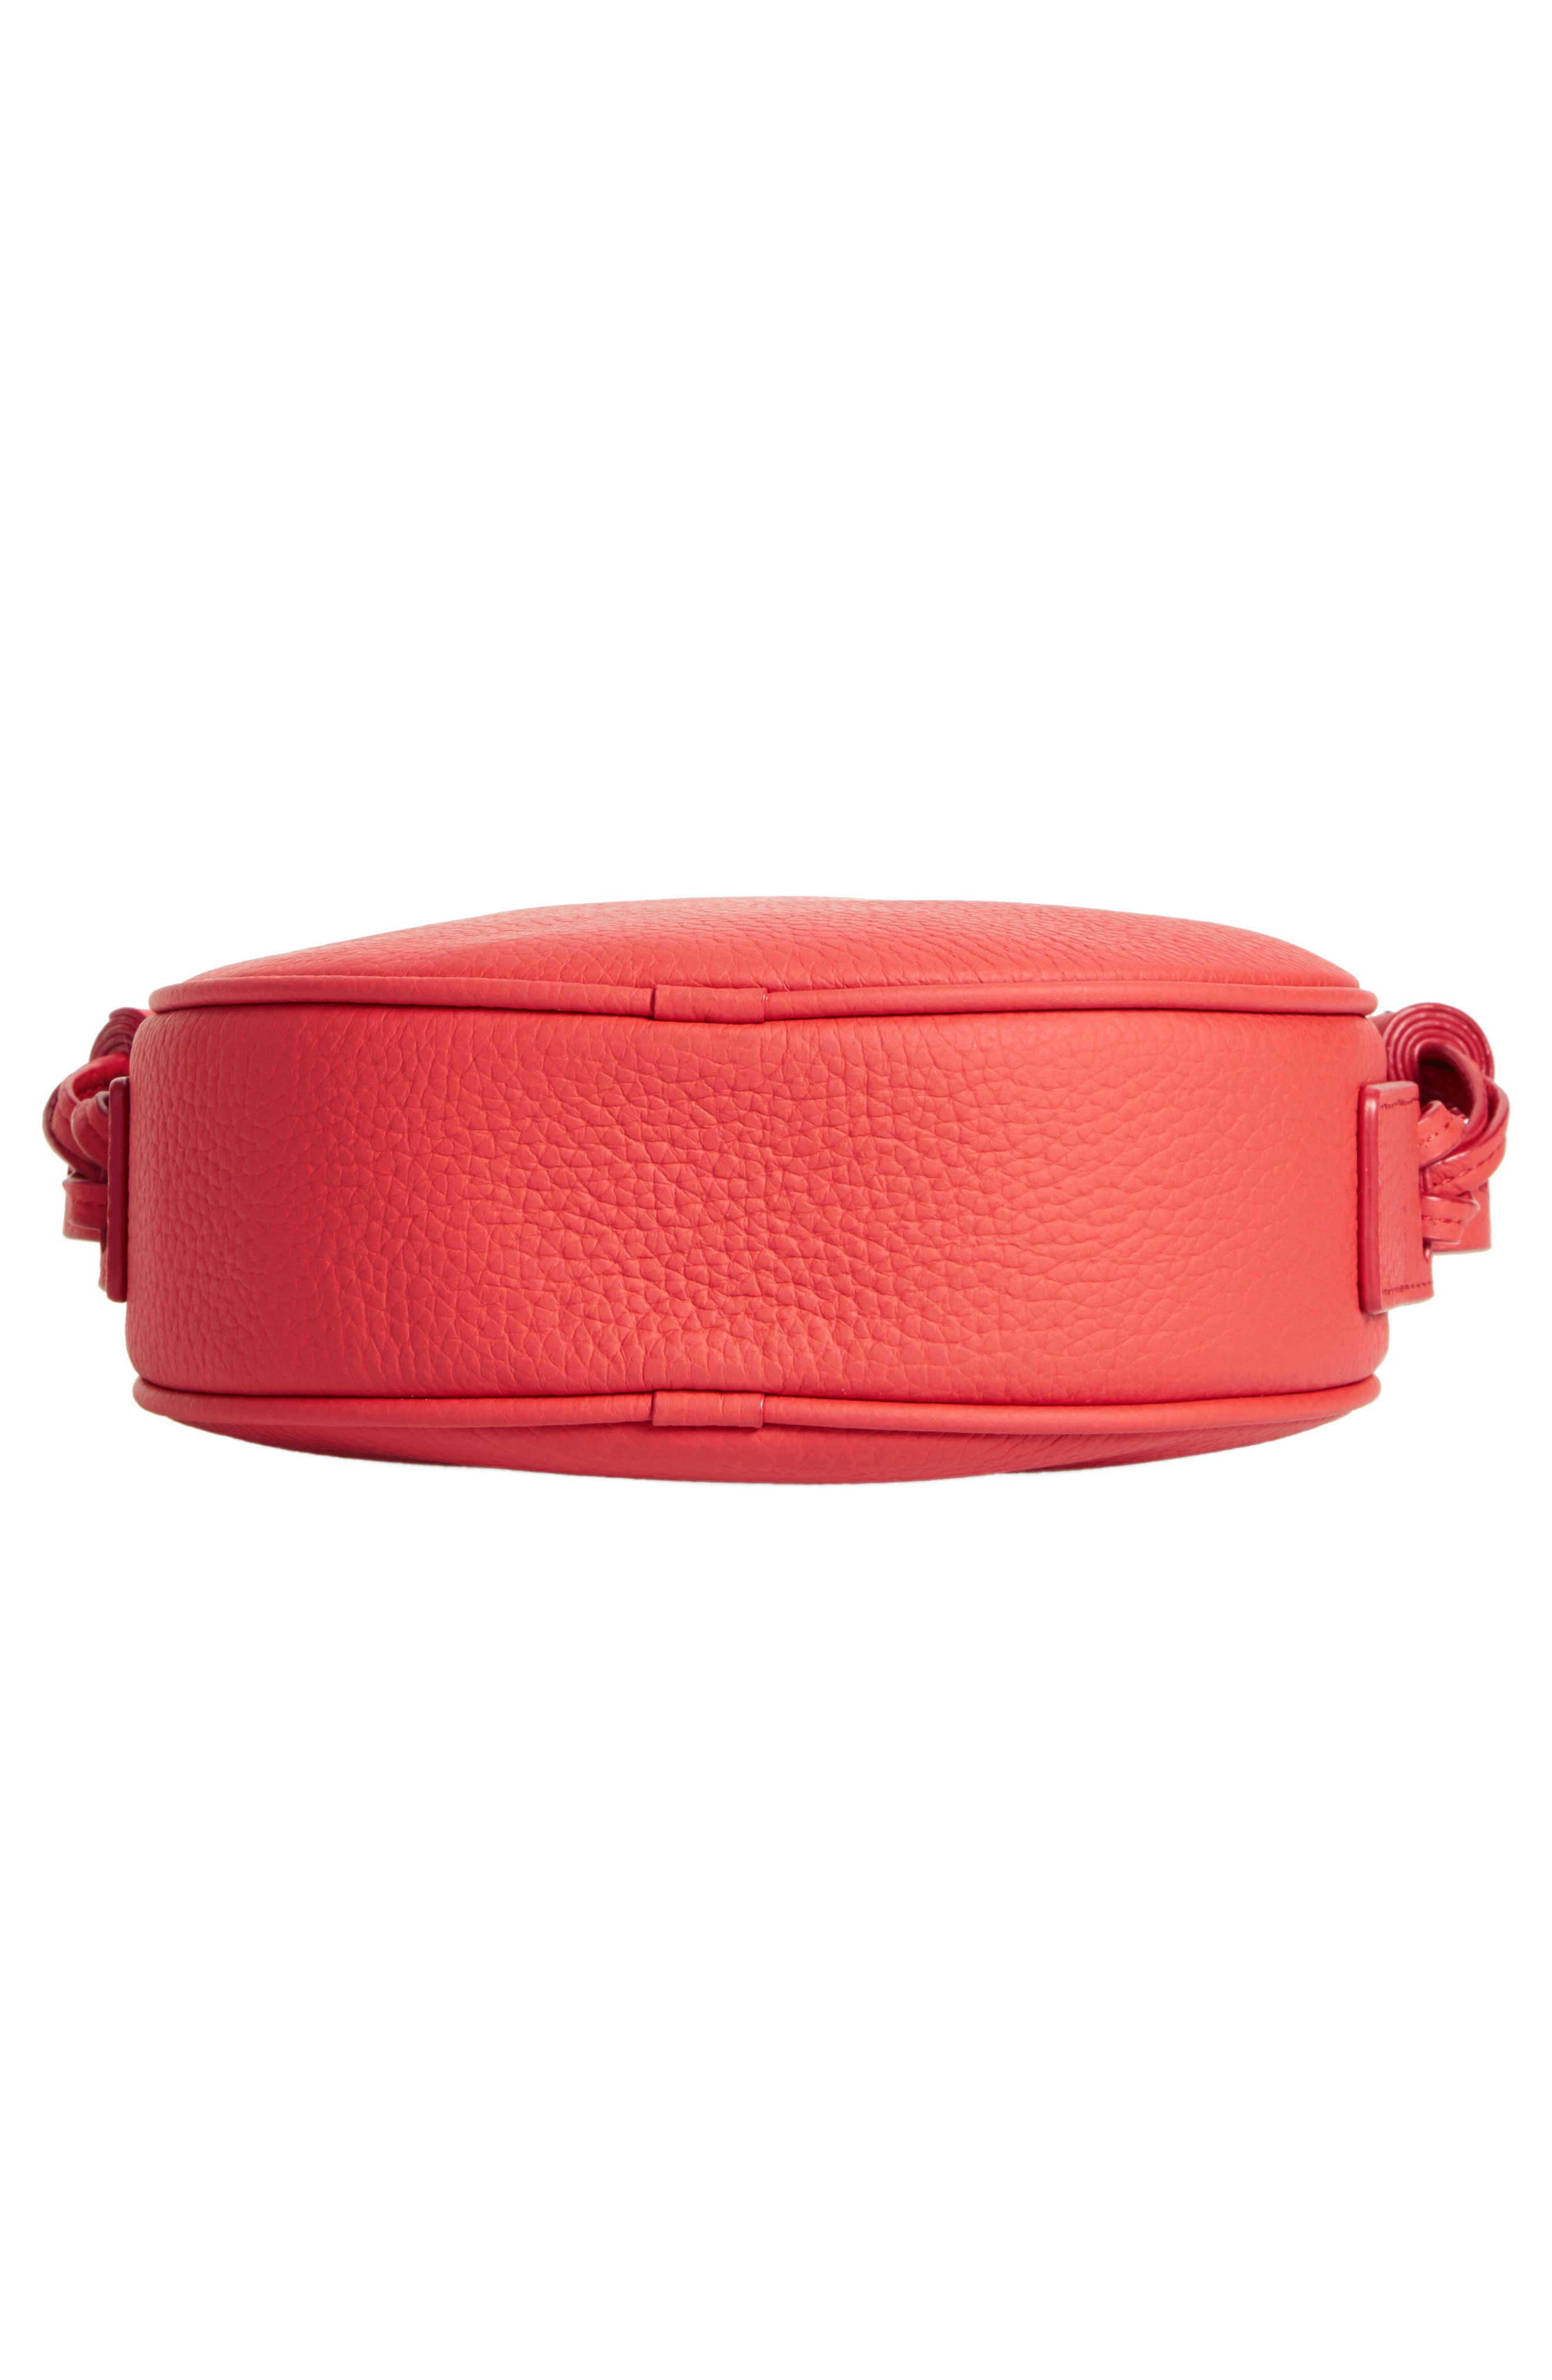 Kepi Circle Leather Crossbody Bag,                             Alternate thumbnail 6, color,                             CORAL RED